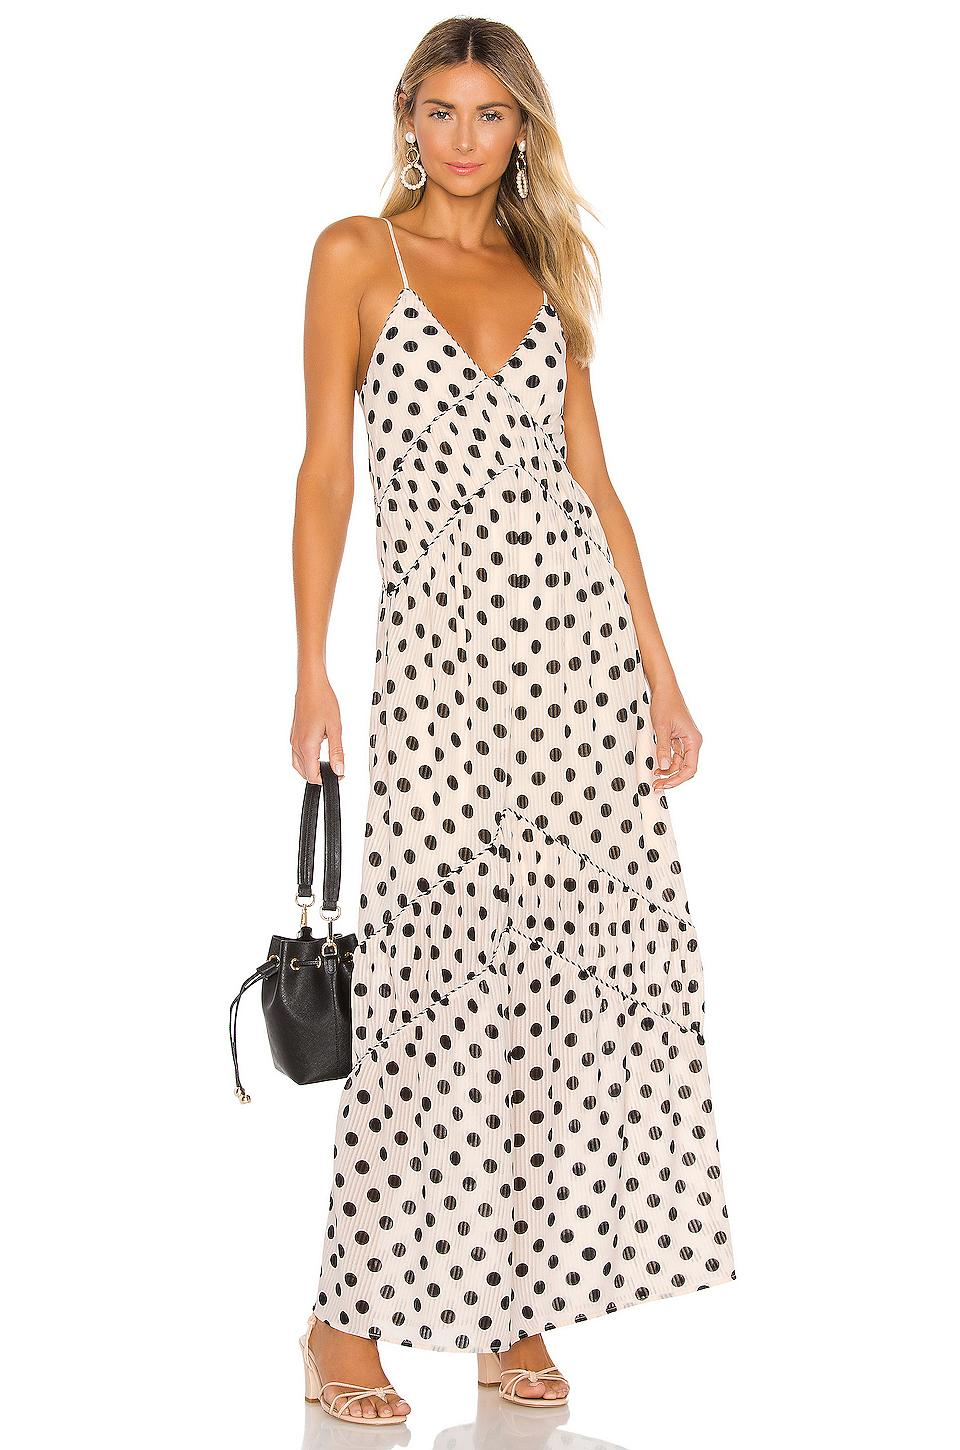 7a9c69b3960 House of Harlow 1960 X Revolve Russo Maxi in White - Lyst